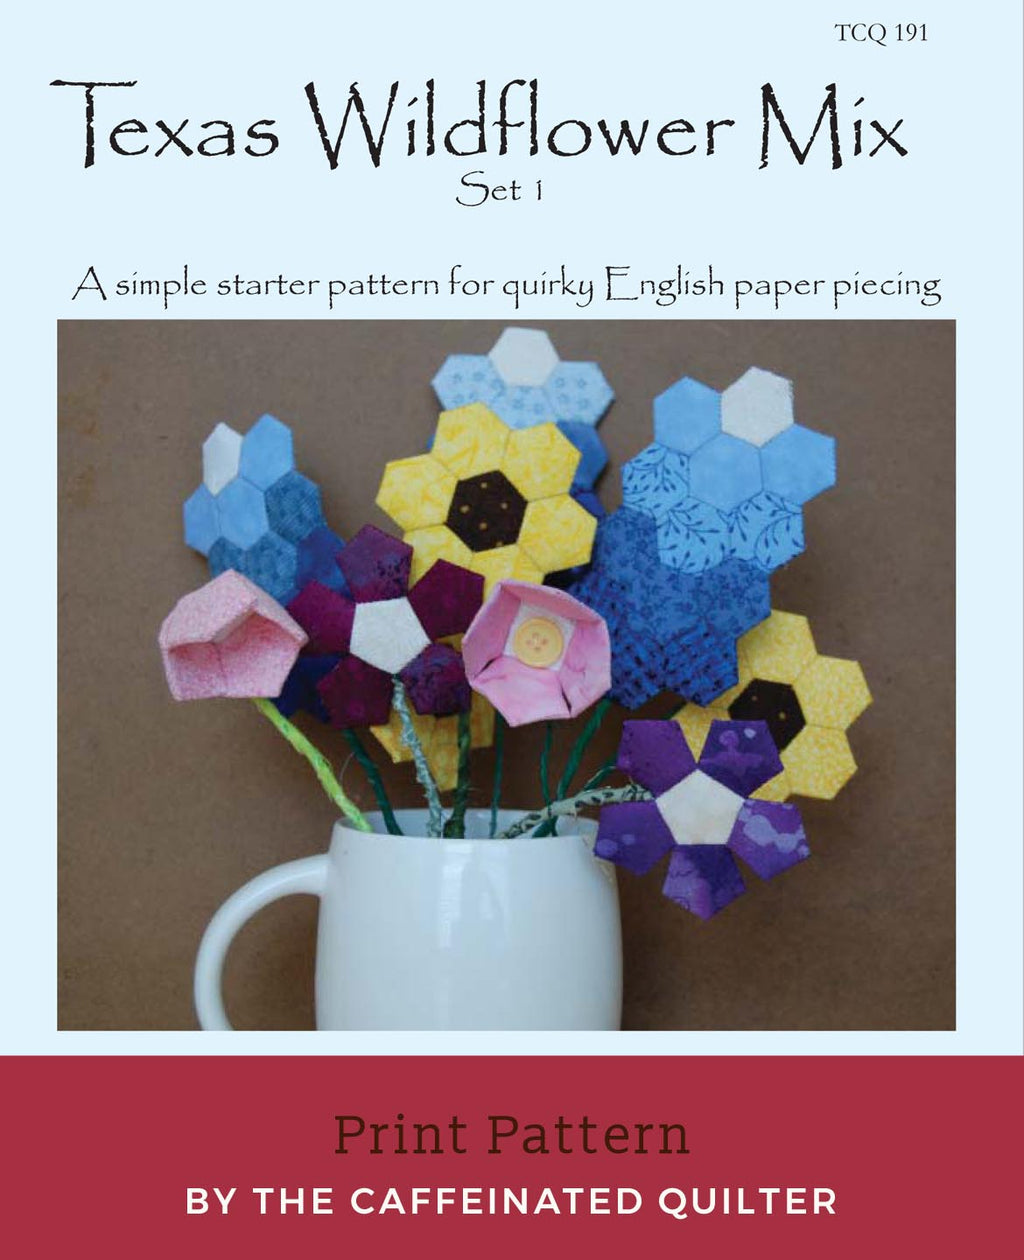 Texas Wildflower Mix Set I kit